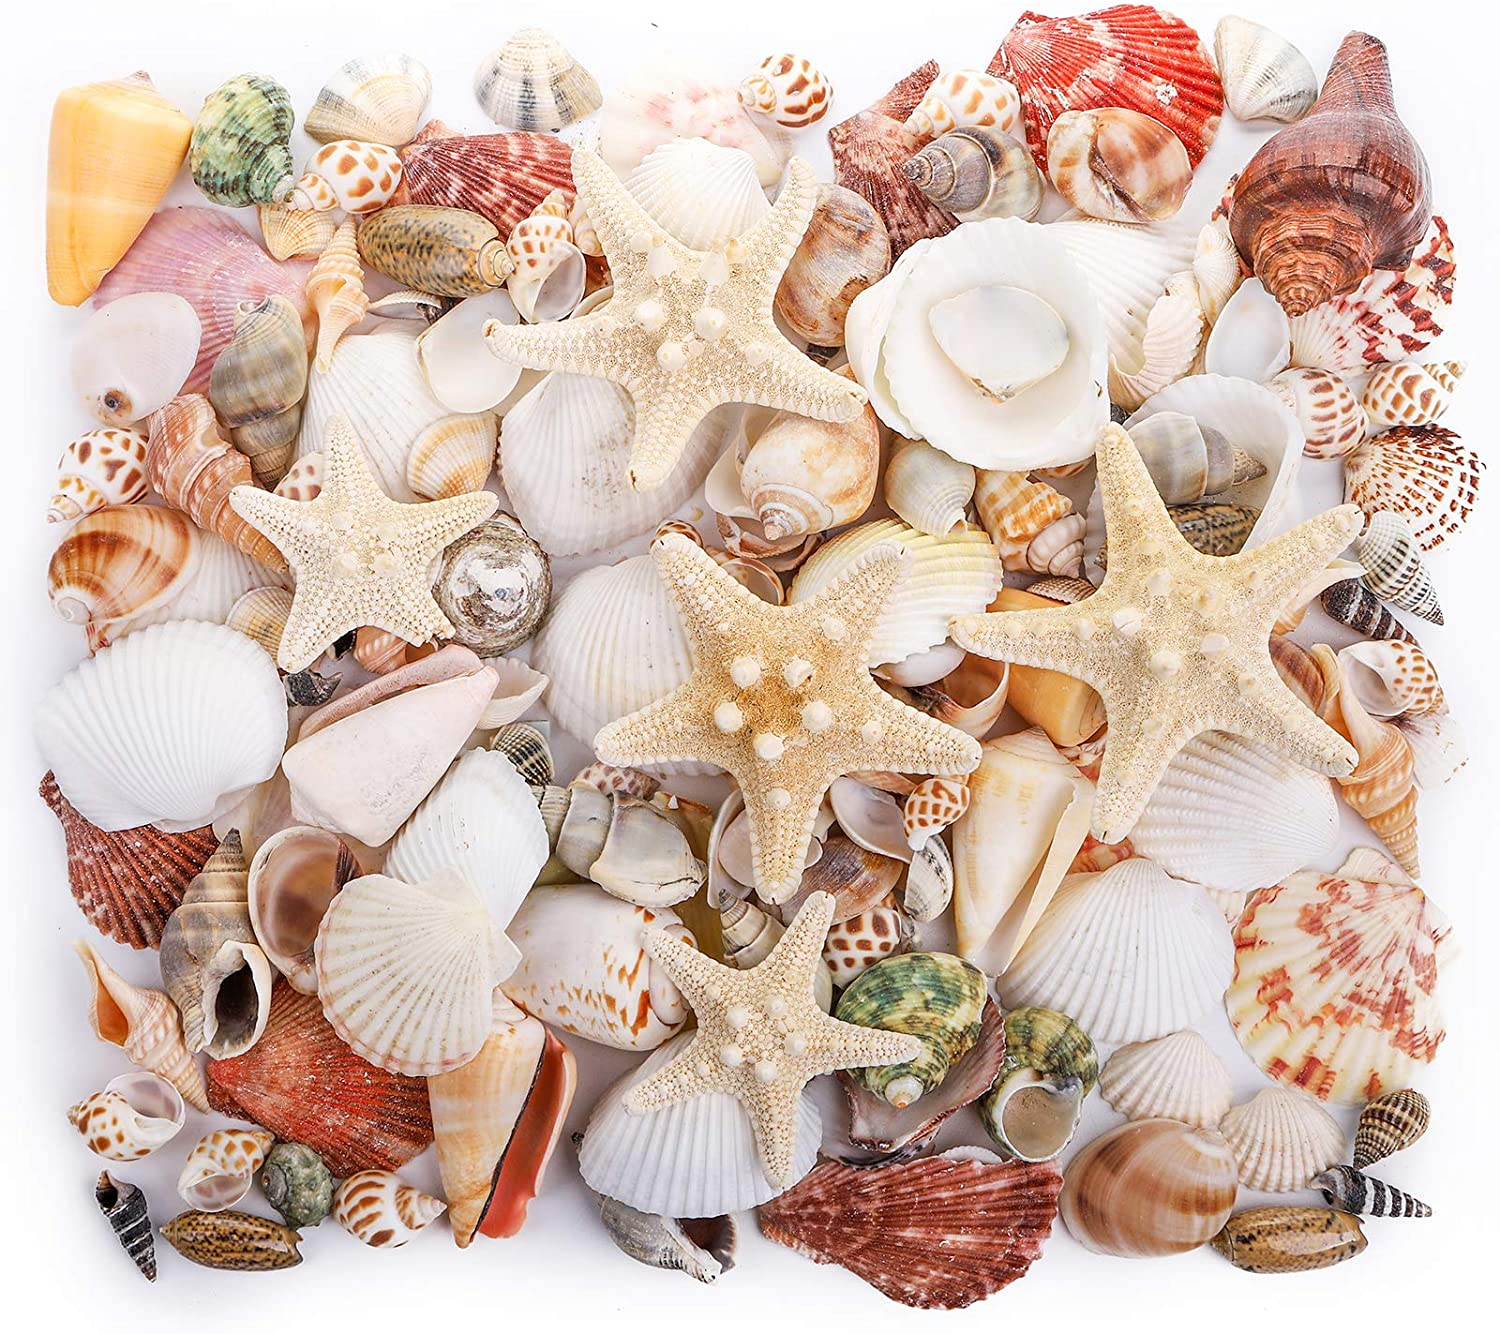 yarlung 1.1 Pounds Mixed Beach Seashells Starfish, Colorful Natural Seashells Supplies for Fish Tank, Home Decorations, Beach Theme Party, Candle Making, Wedding Decor, DIY Crafts